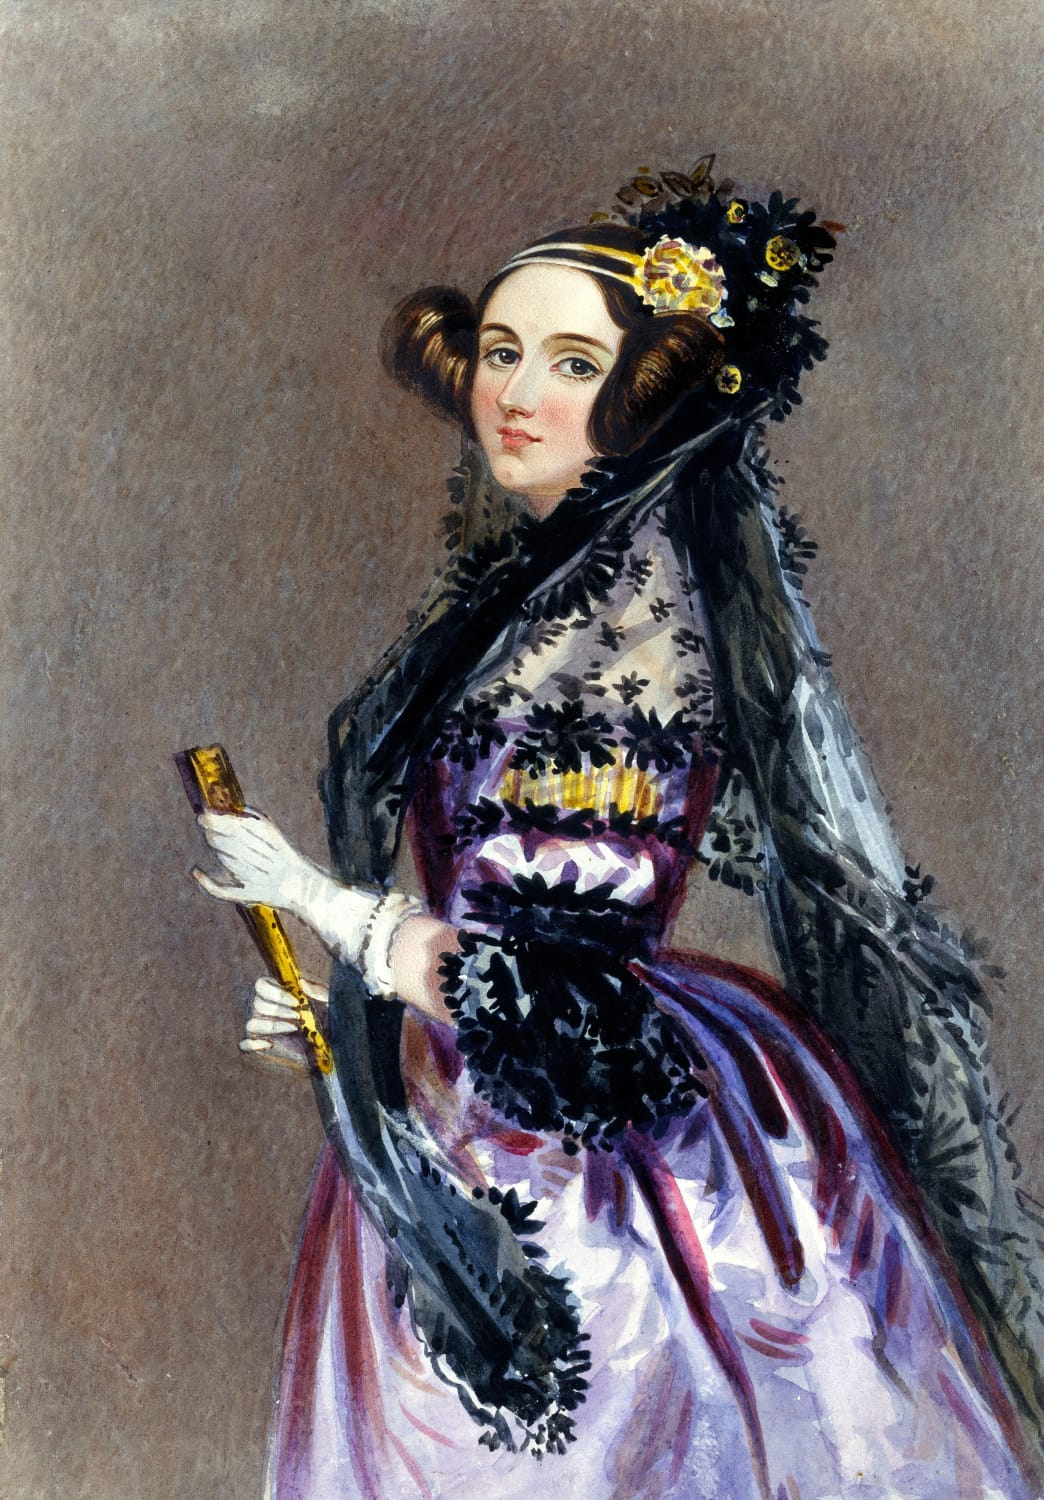 Spotlight on: Ada Lovelace